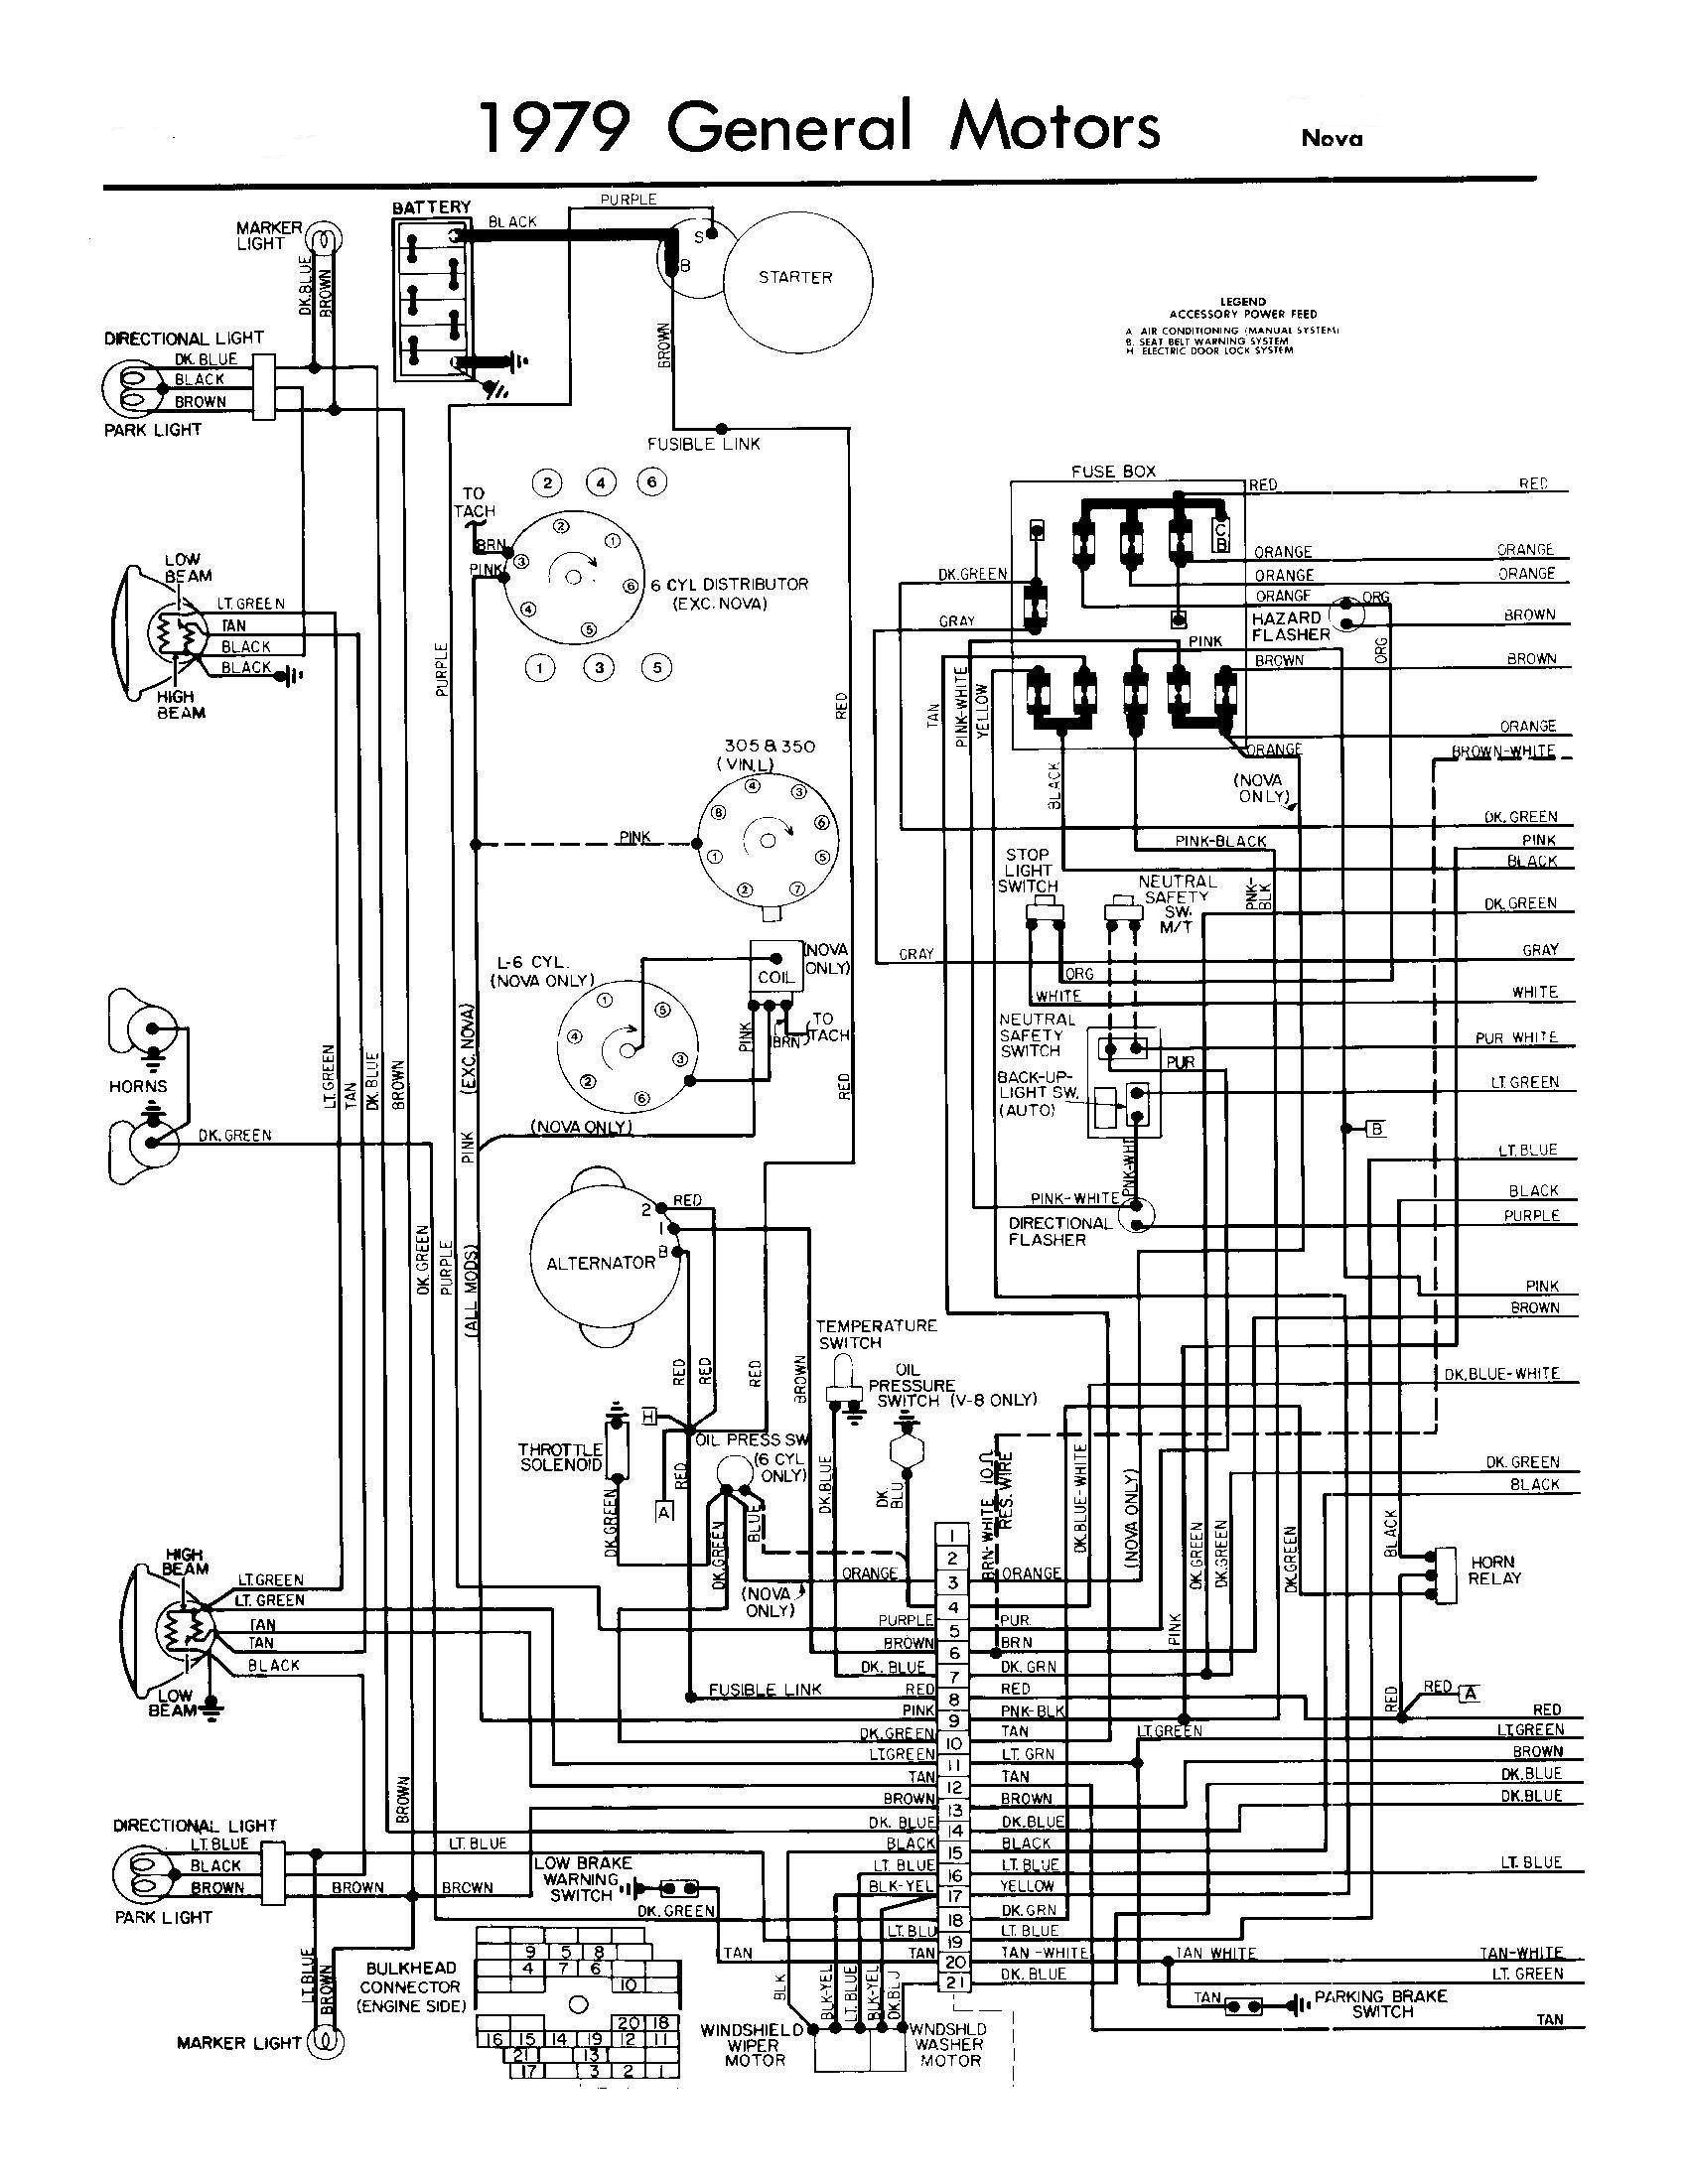 Chevy Truck Schematics - Electrical Drawing Wiring Diagram •